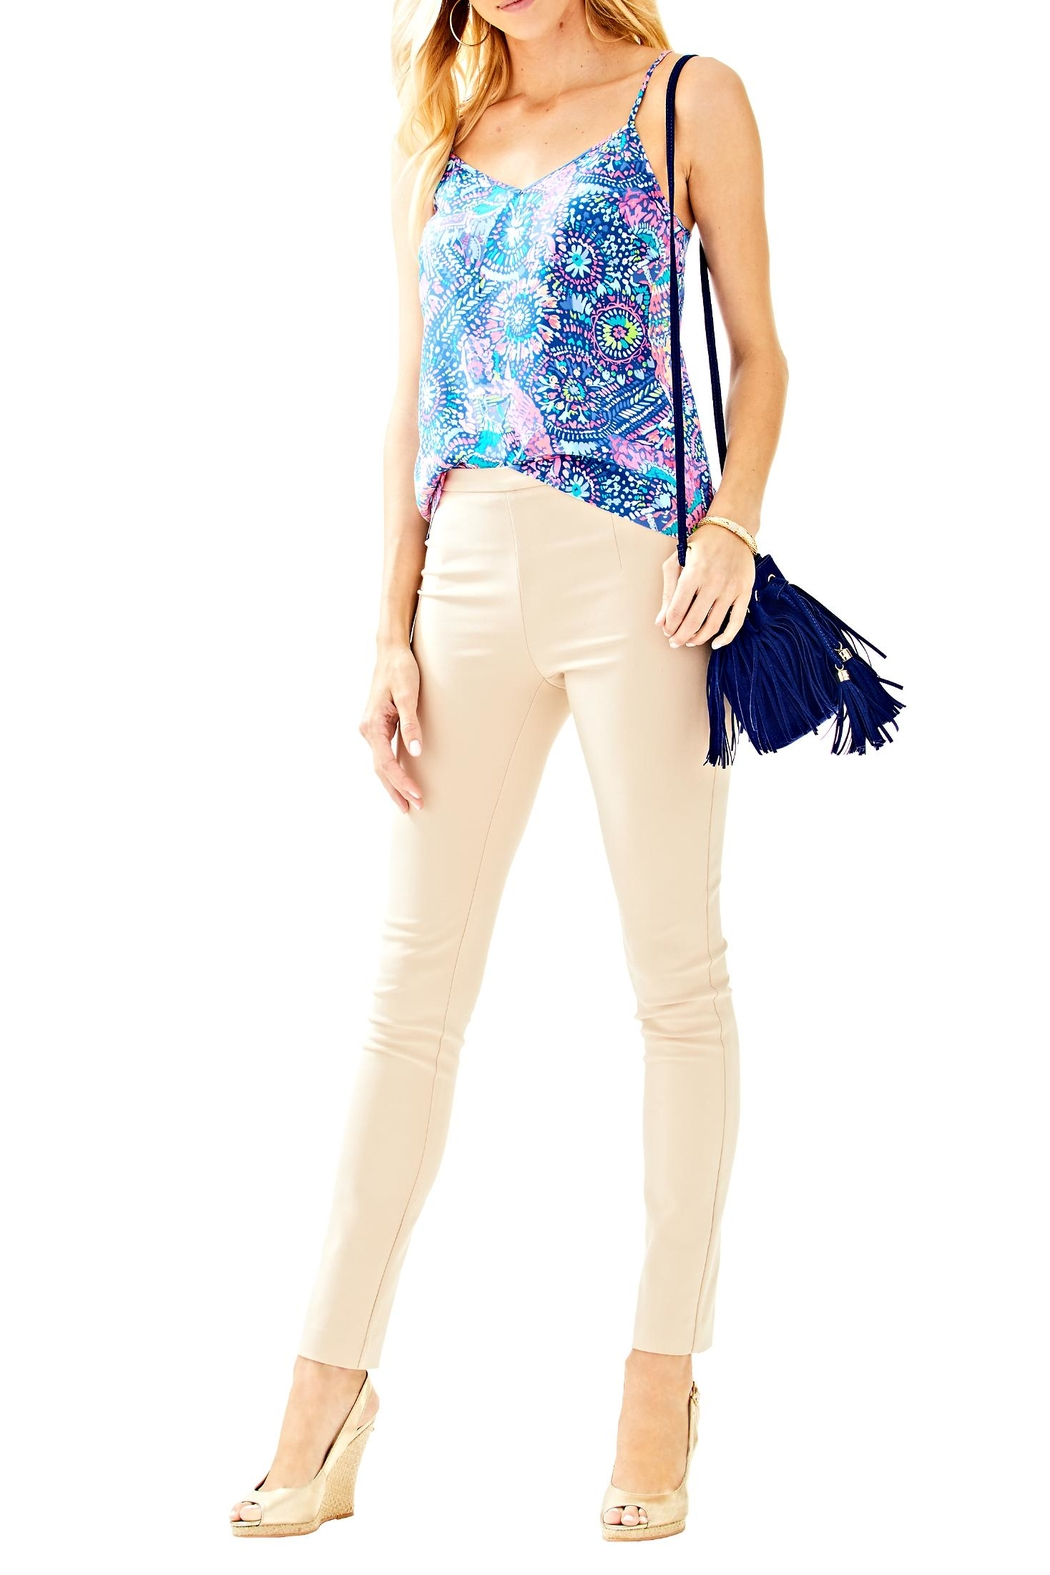 Lilly Pulitzer Alessia Stretch Pant - Back Cropped Image